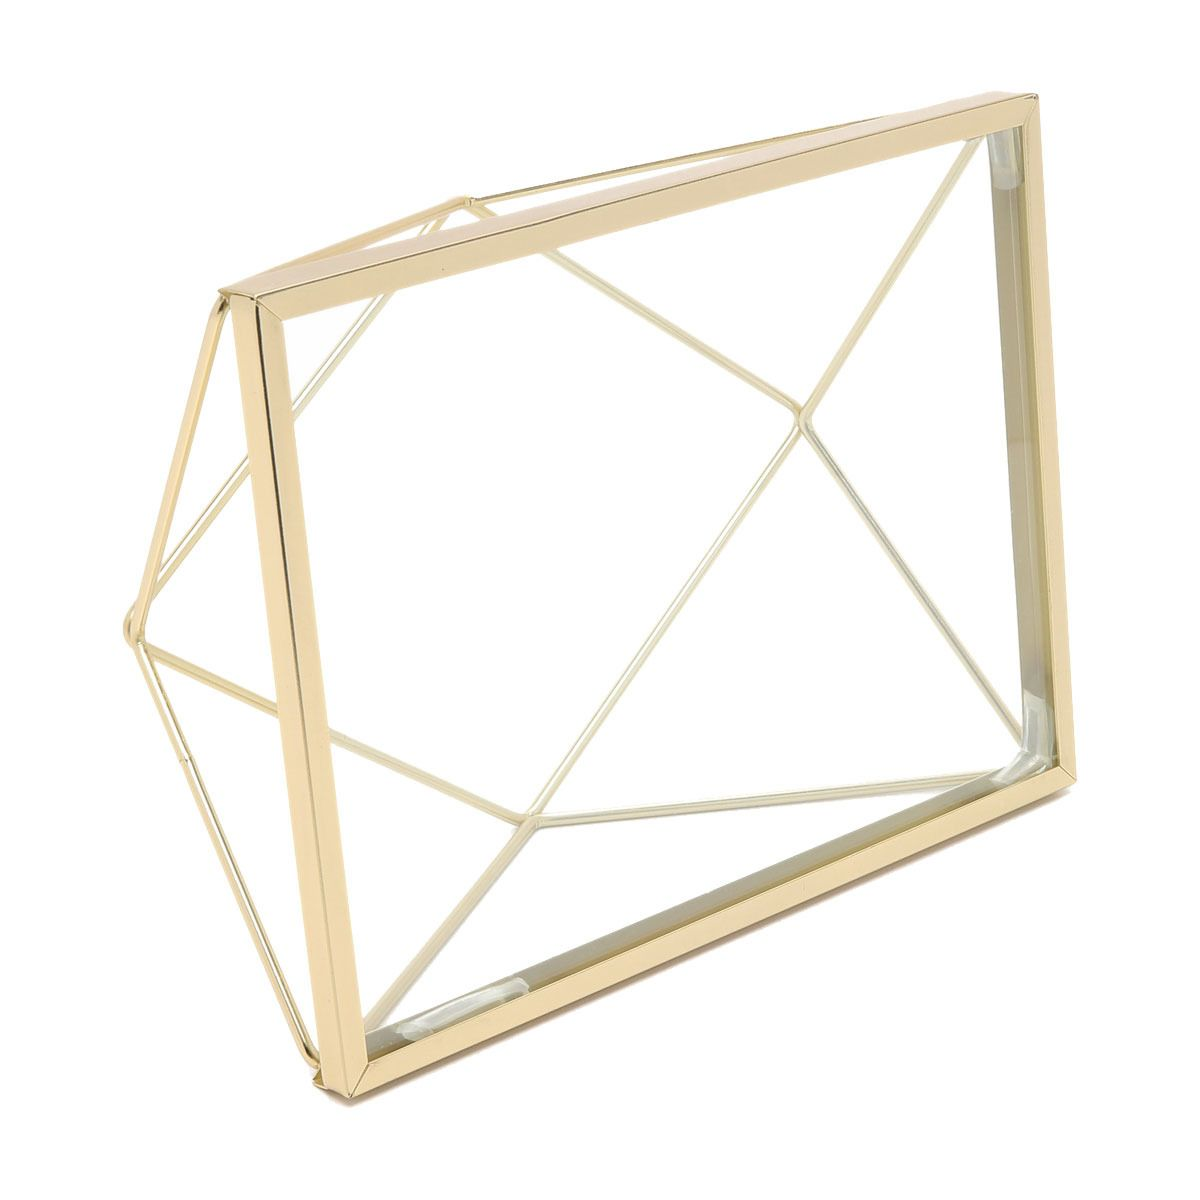 Best holiday gifts under $50 from NY Mag - Umbra Prisma Frame